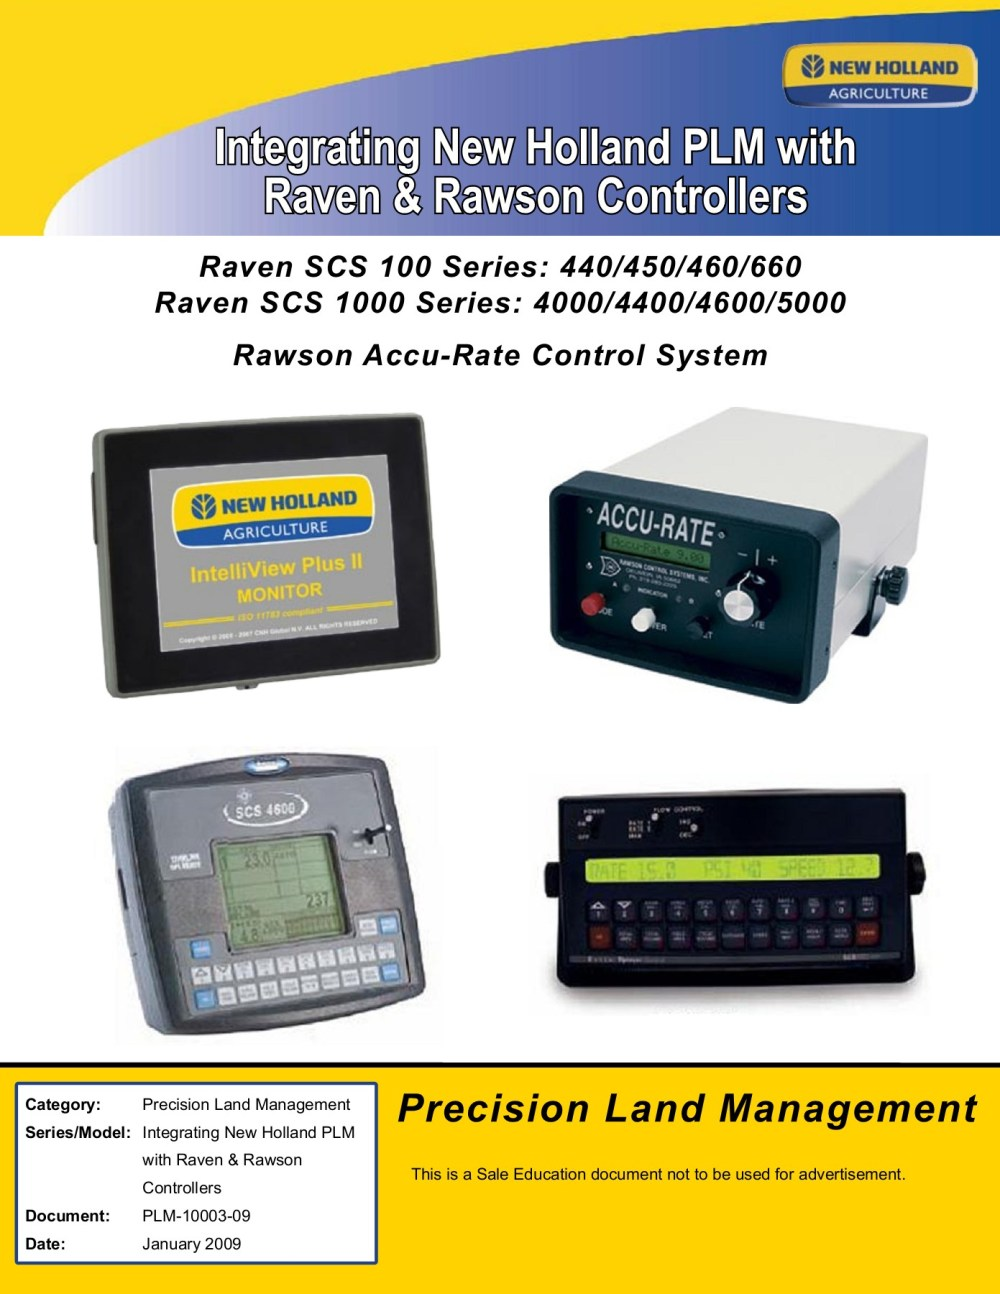 medium resolution of precision land management this is a sale education document not to be used for advertisement integrating new holland plm with raven rawson controllers